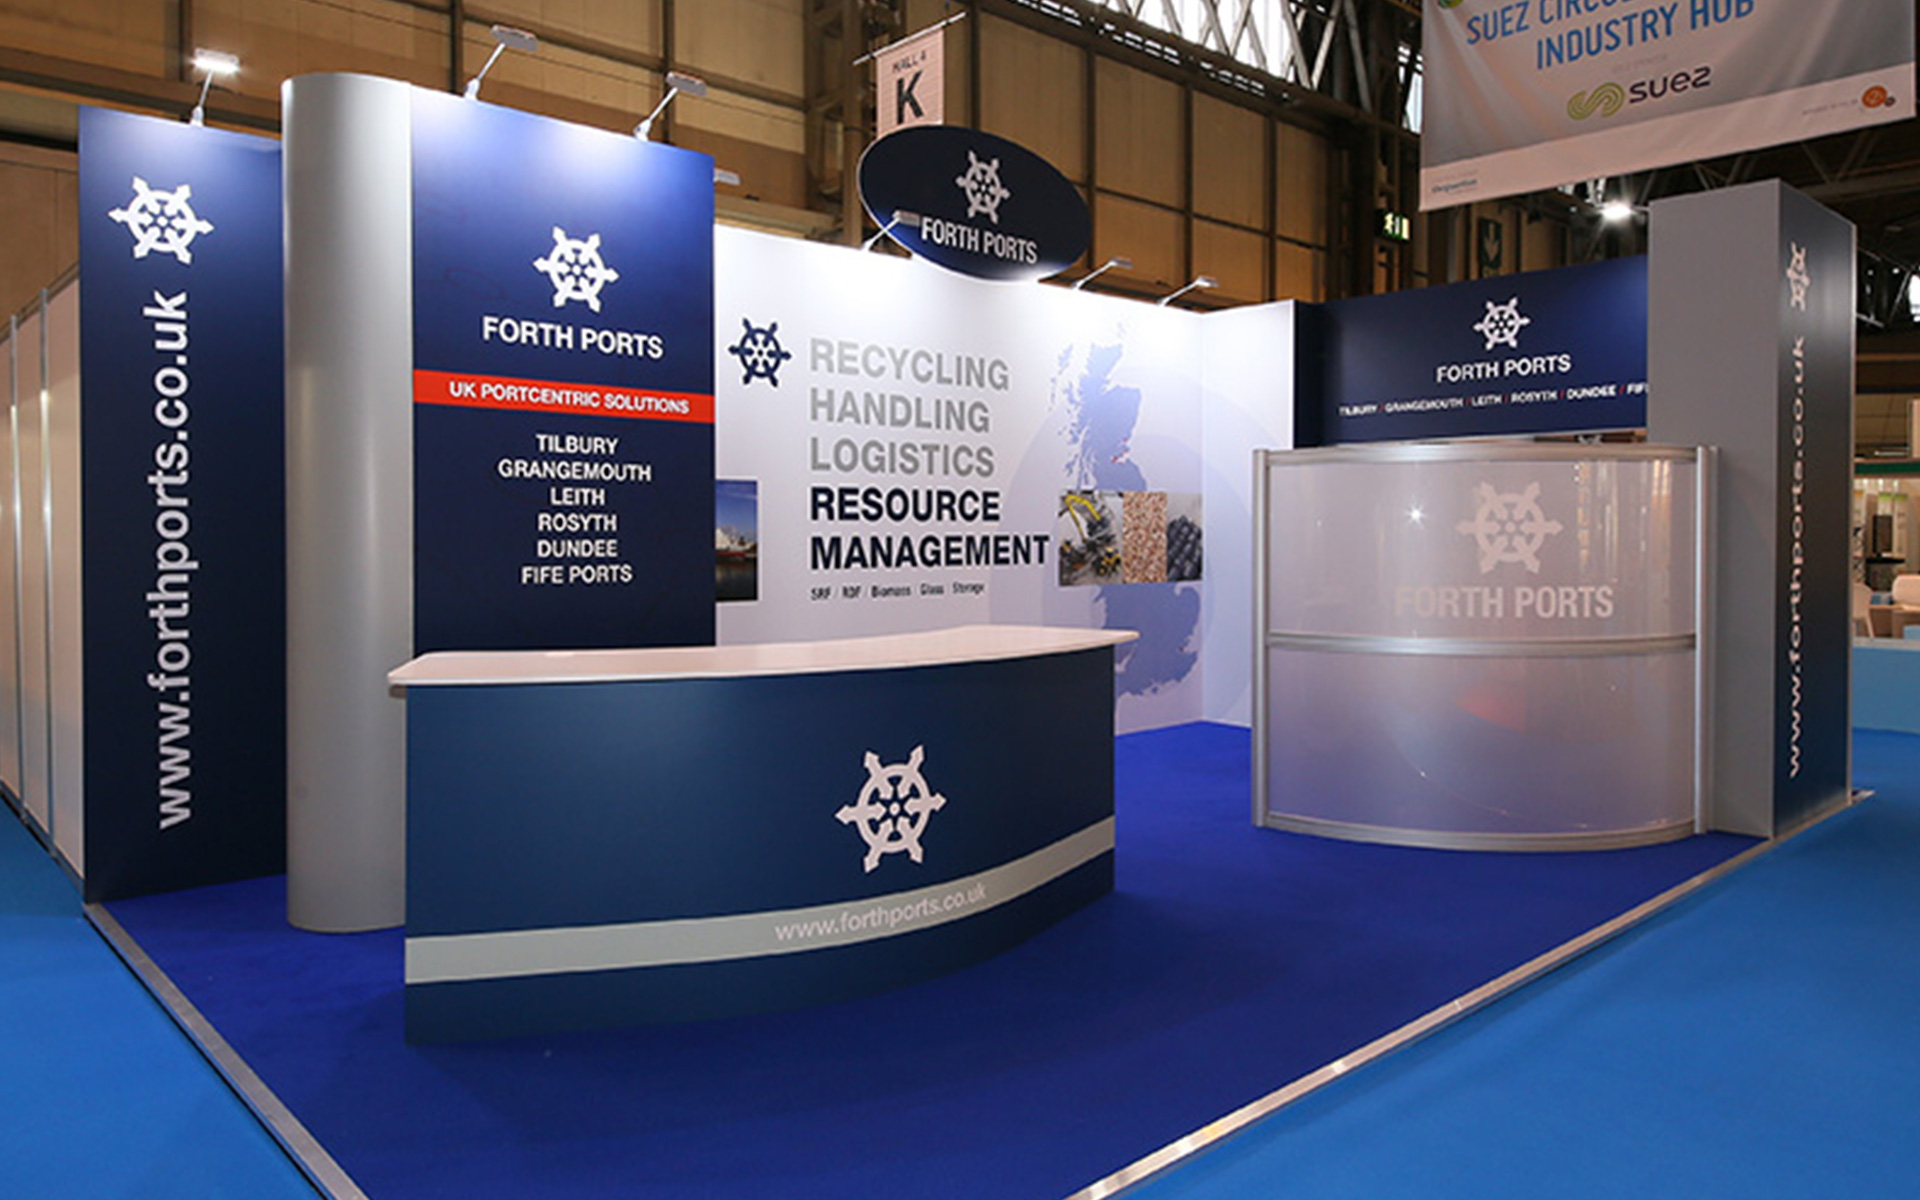 Recycling & Waste Management - Making a Stand